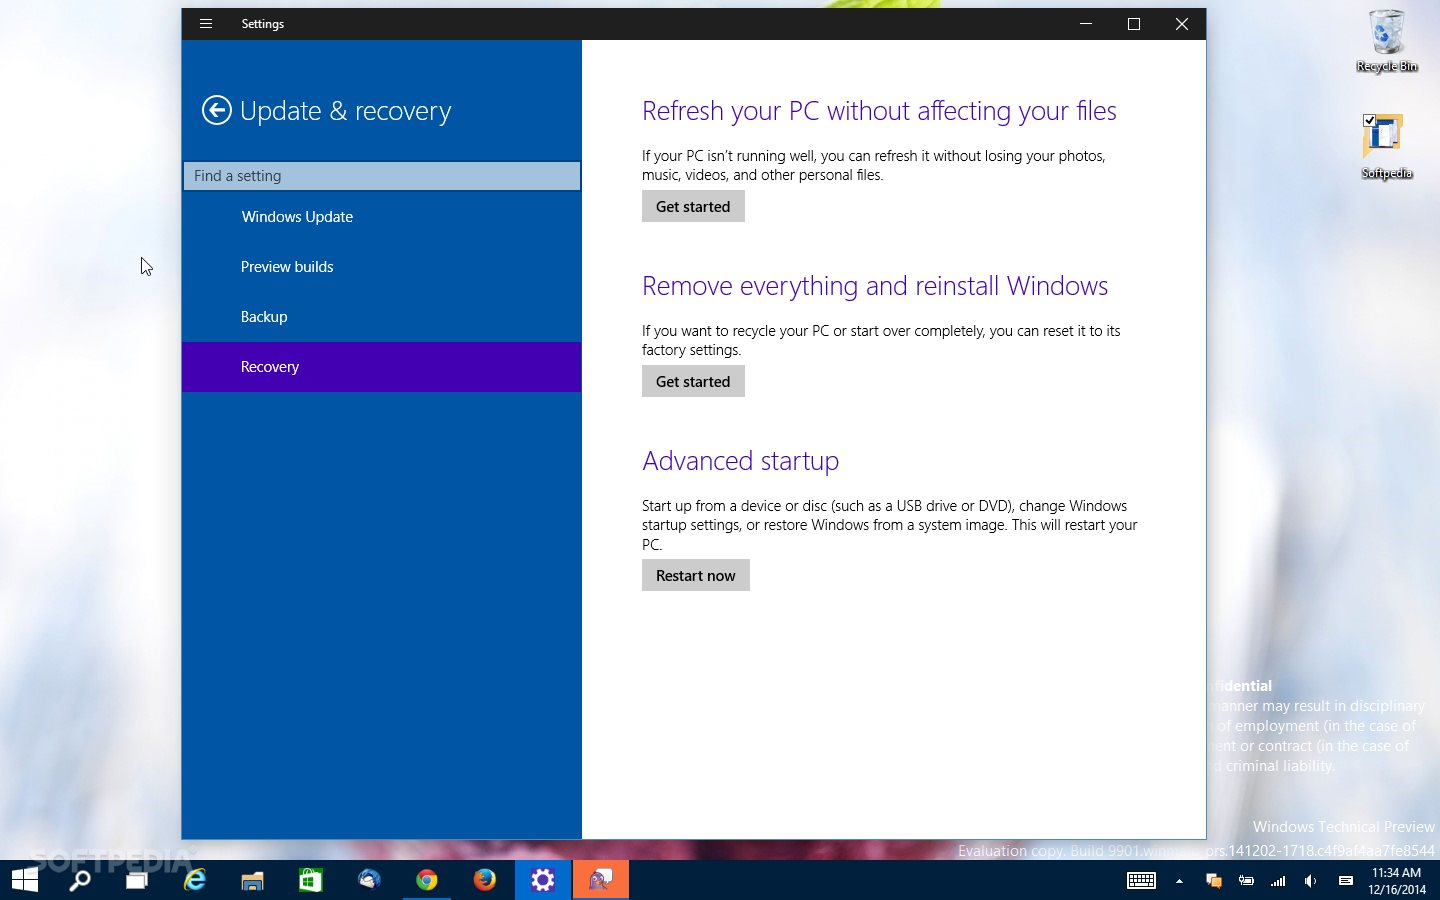 pc settings windows 10 - Monza berglauf-verband com